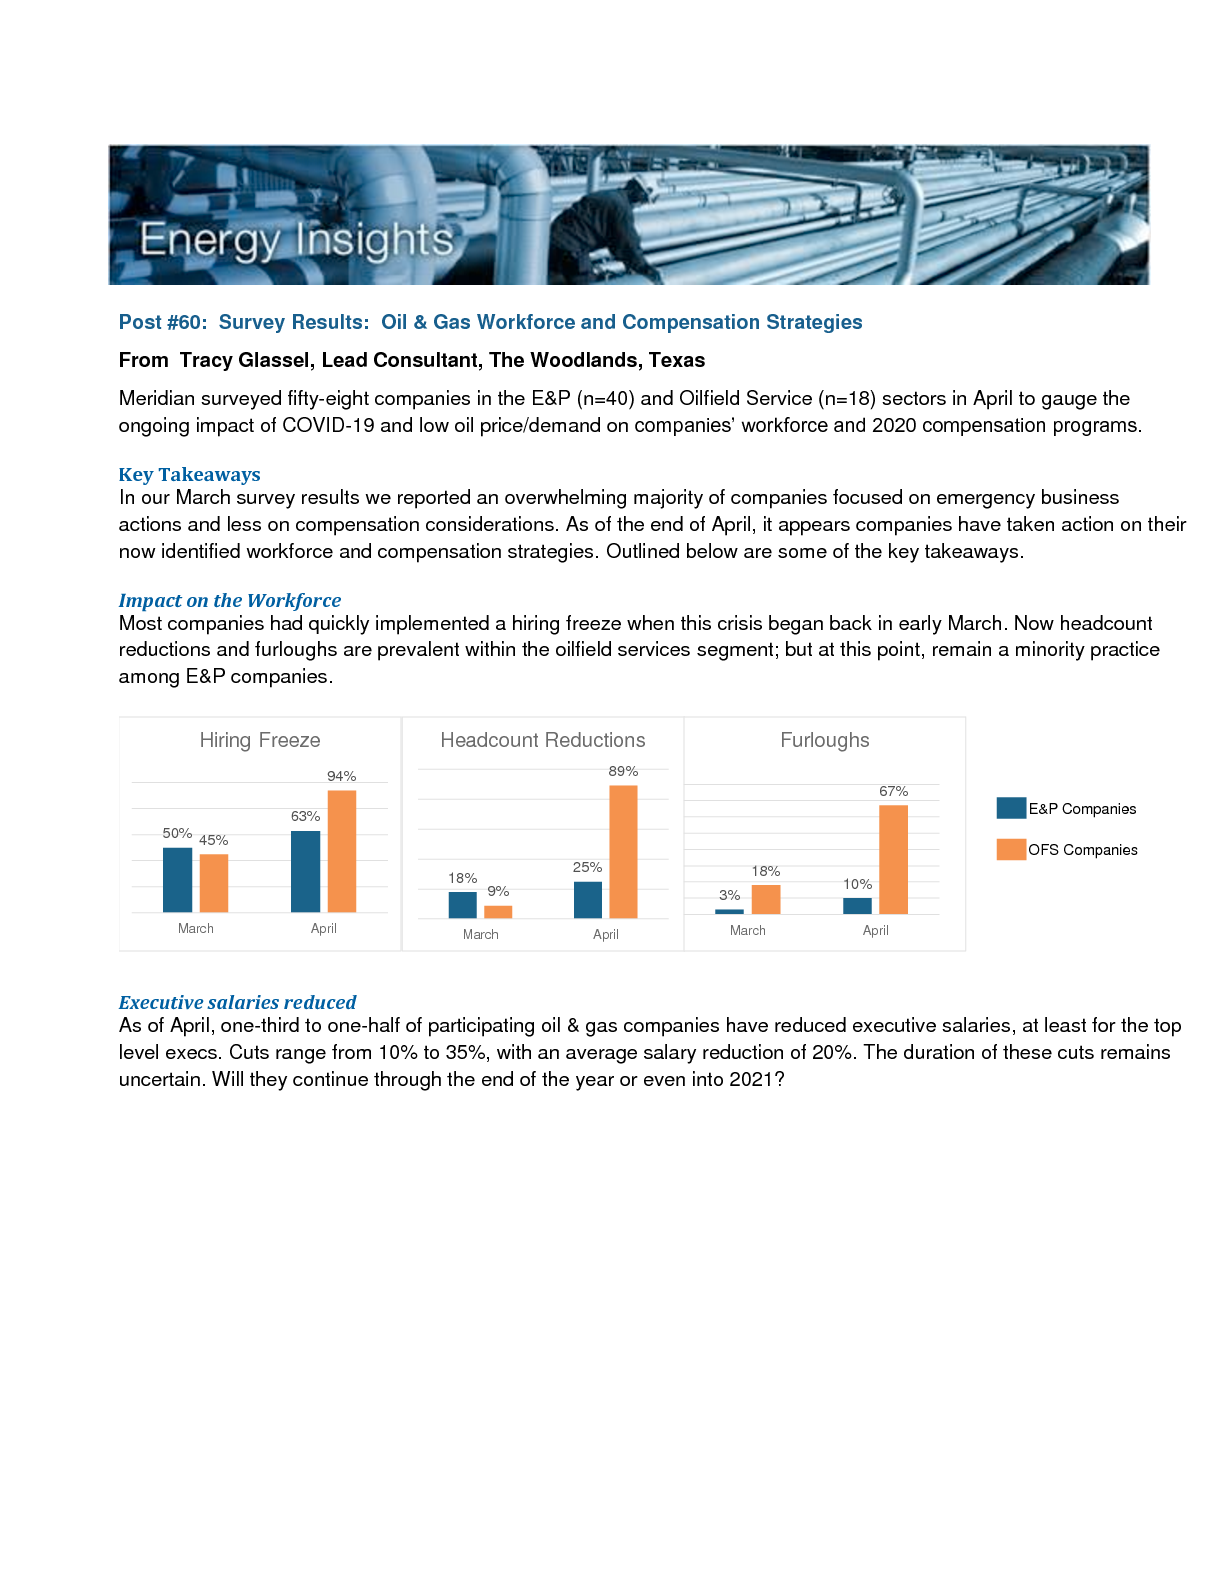 Survey Results: Oil & Gas Workforce and Compensation Strategies (PDF)